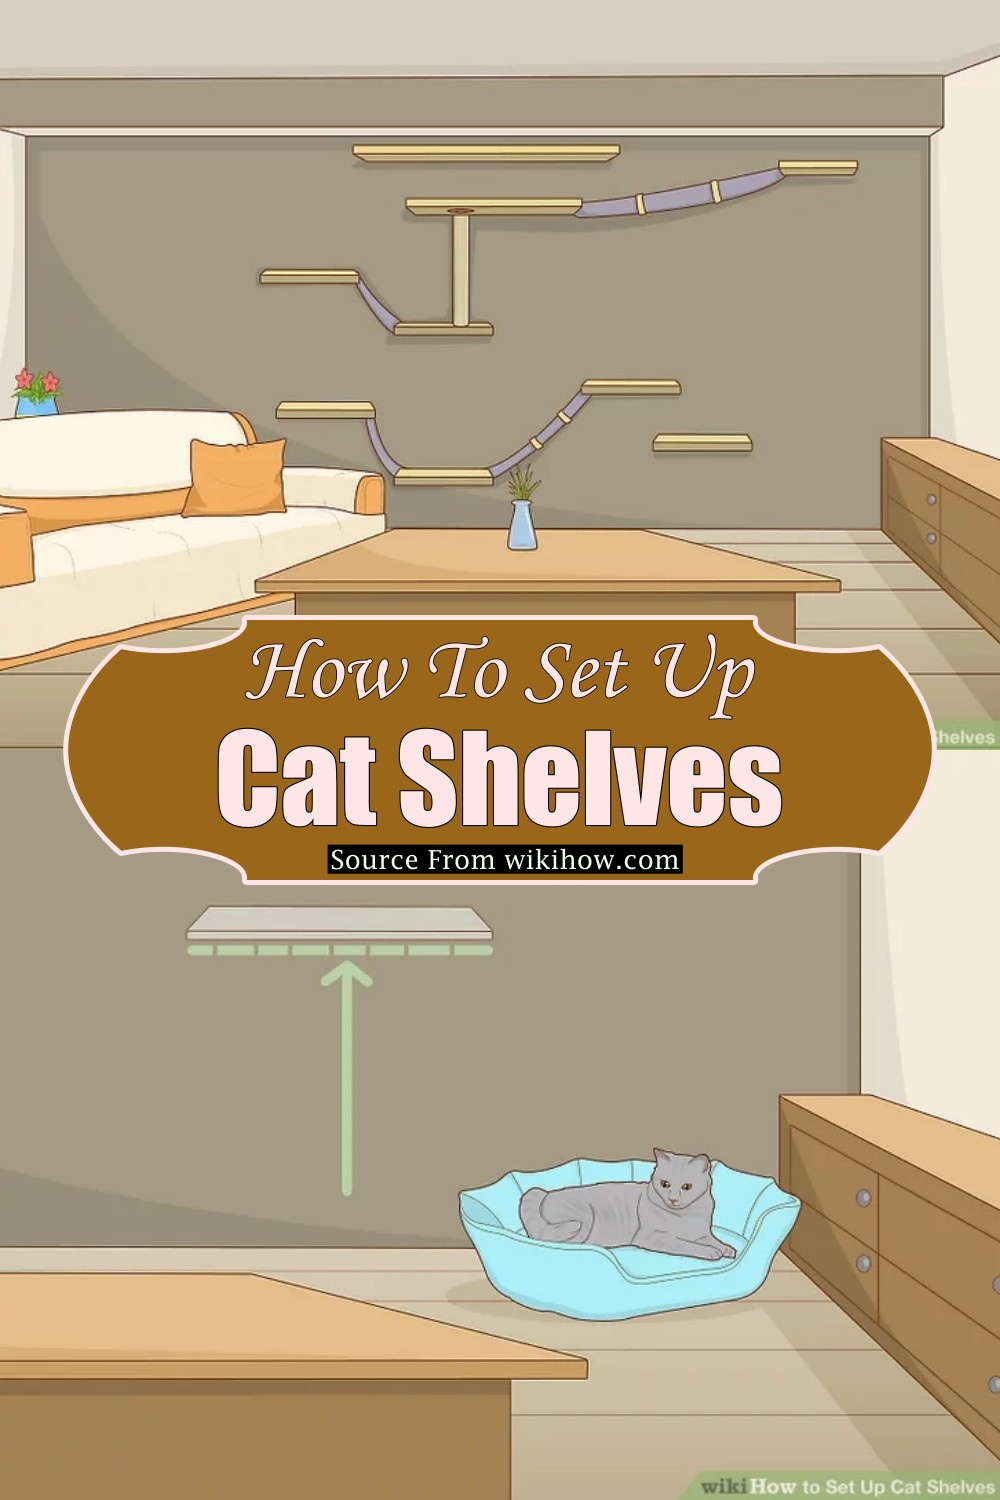 How To Set Up Cat Shelves